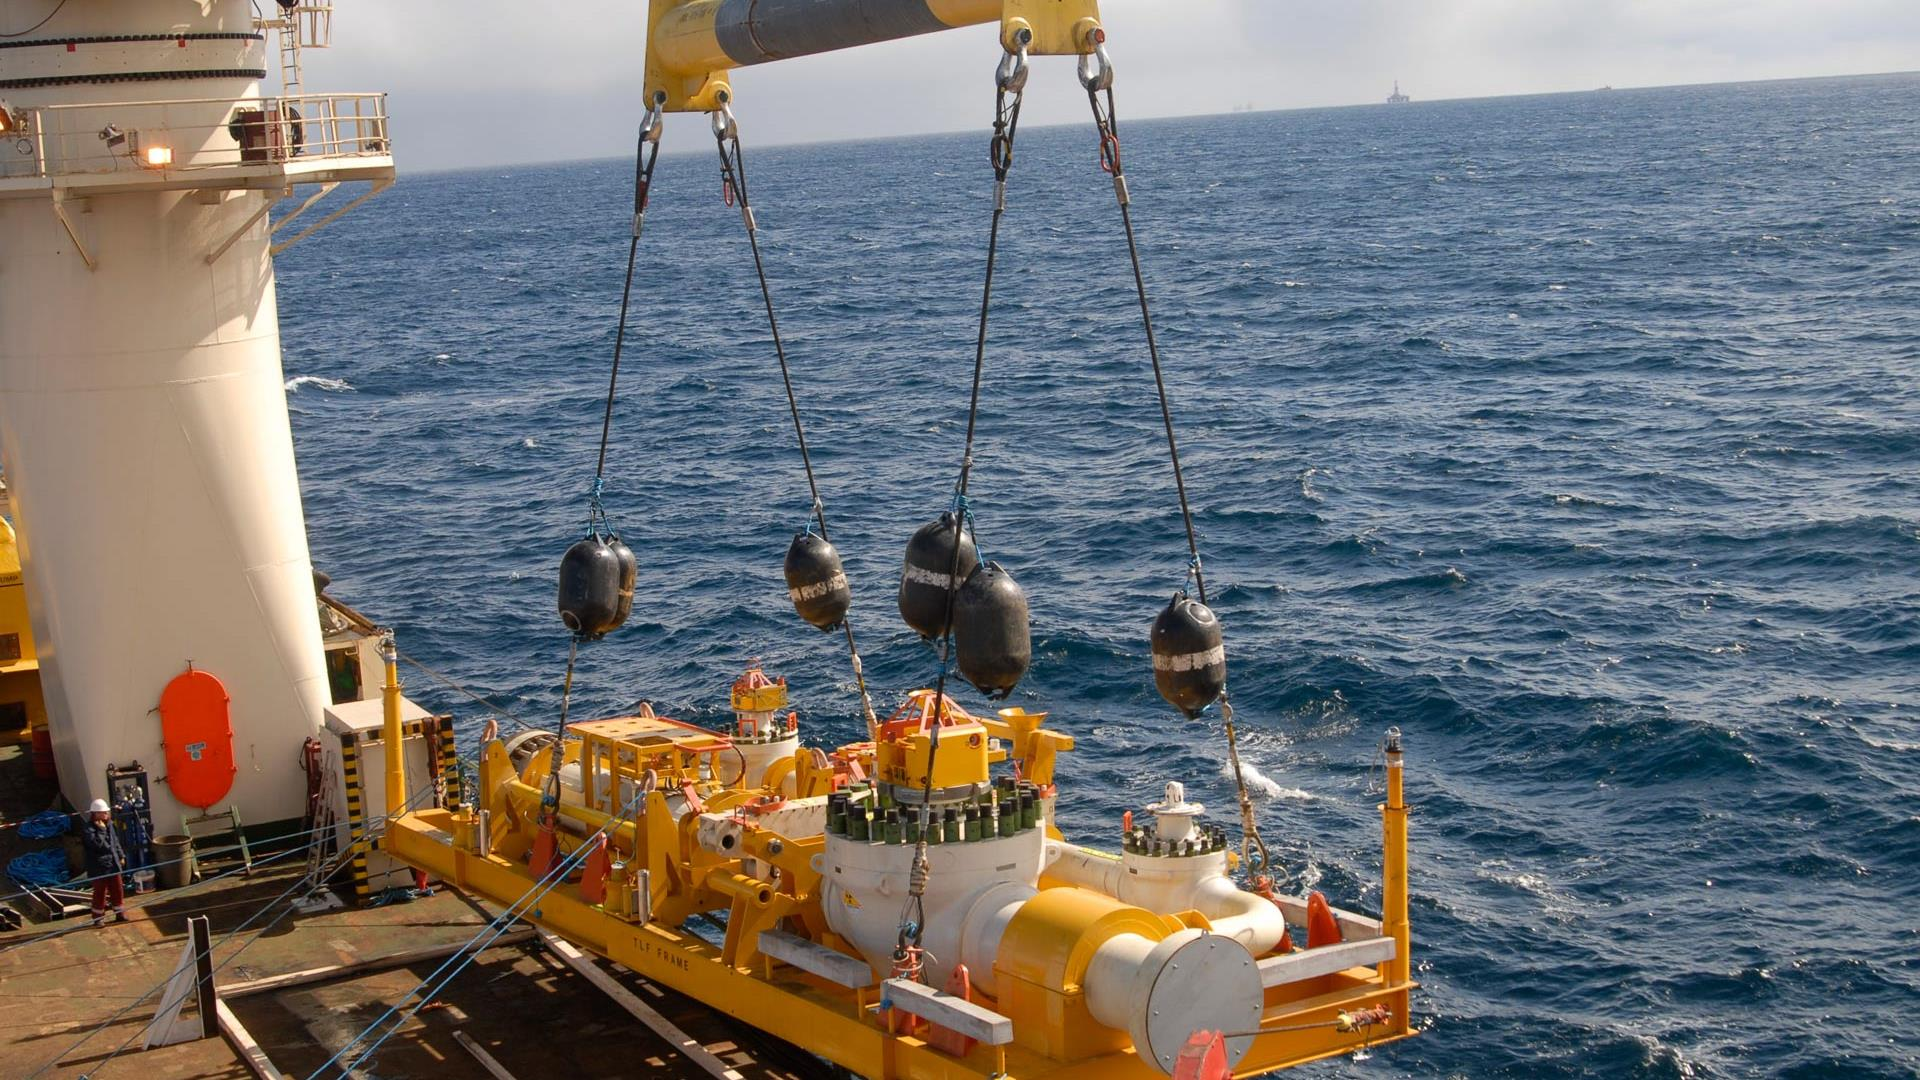 Subsea pipeline structure being deployed from an offshore platform